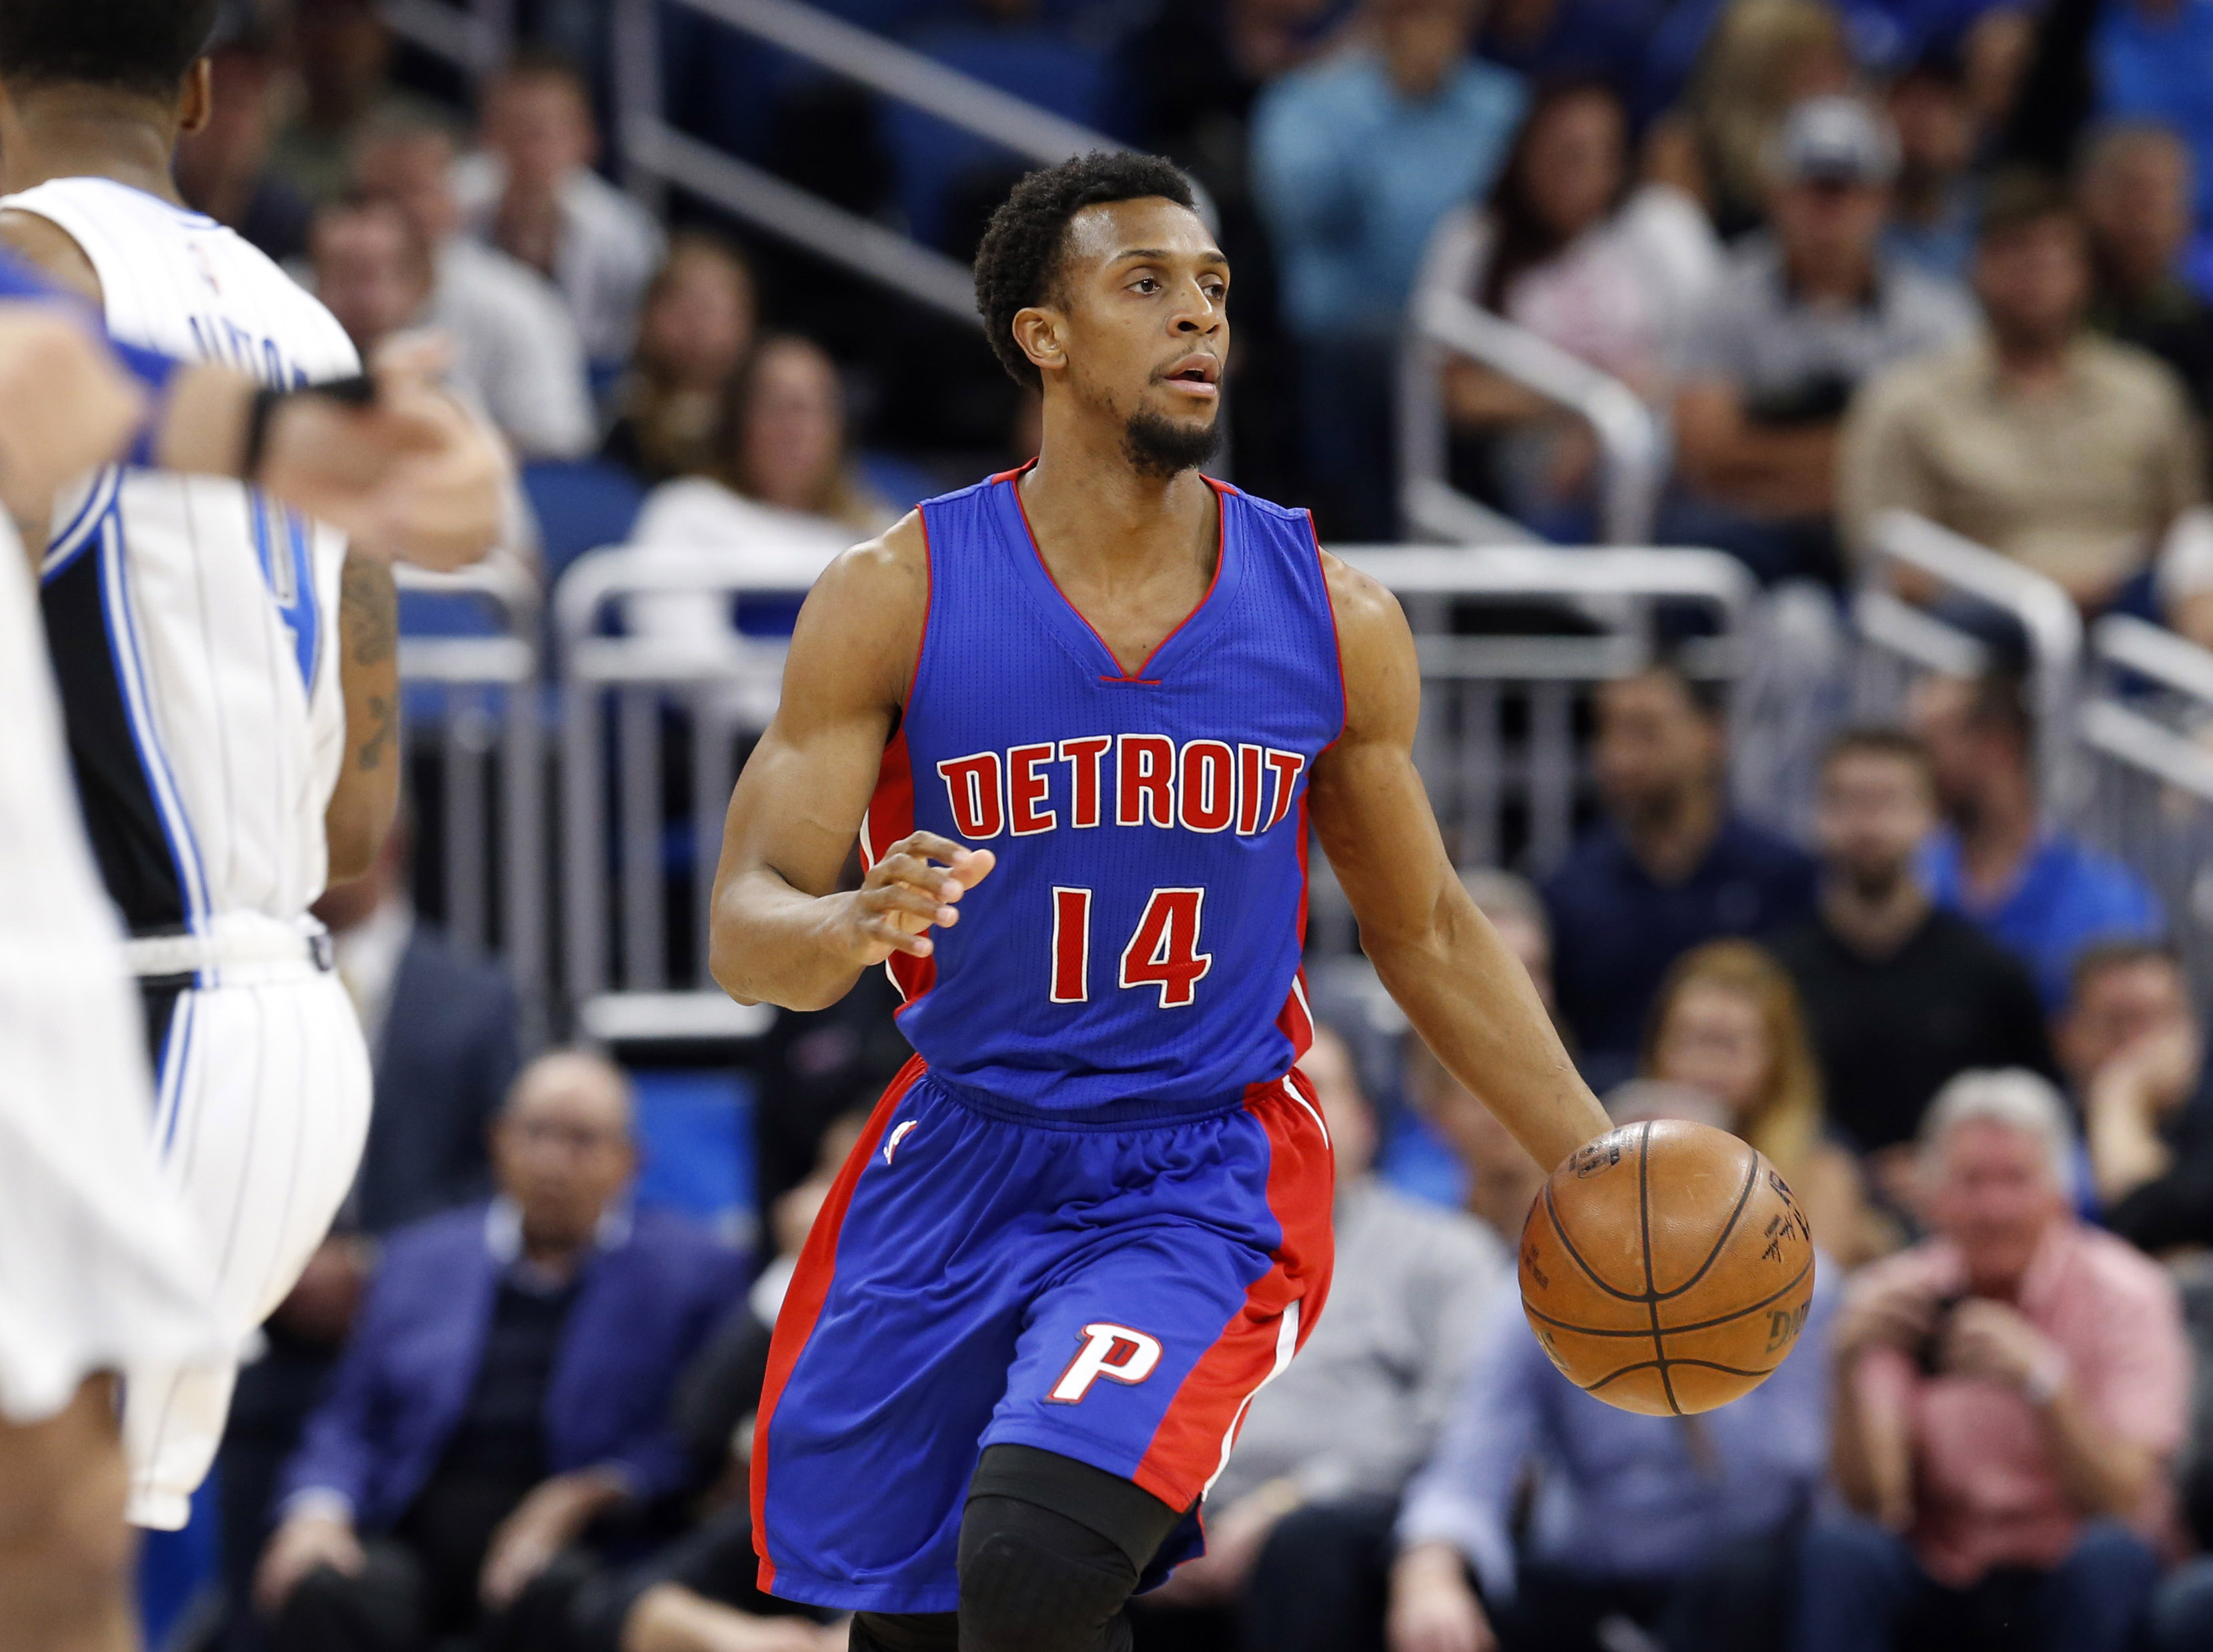 10008943-nba-detroit-pistons-at-orlando-magic